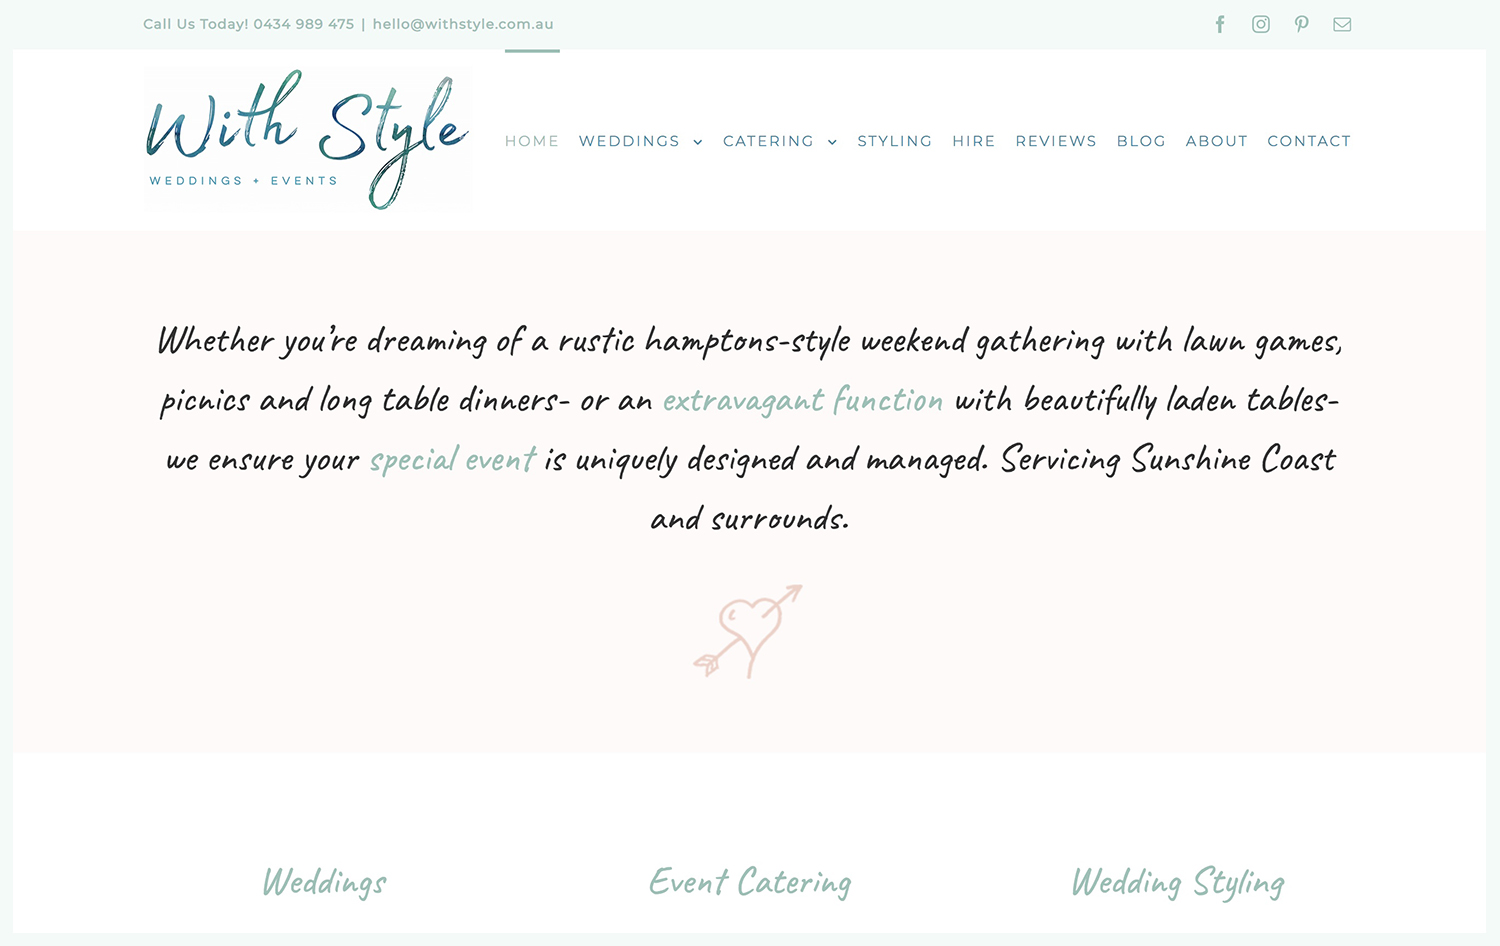 With Style - PH: 0434 989 475 hello@withstyle.com.au